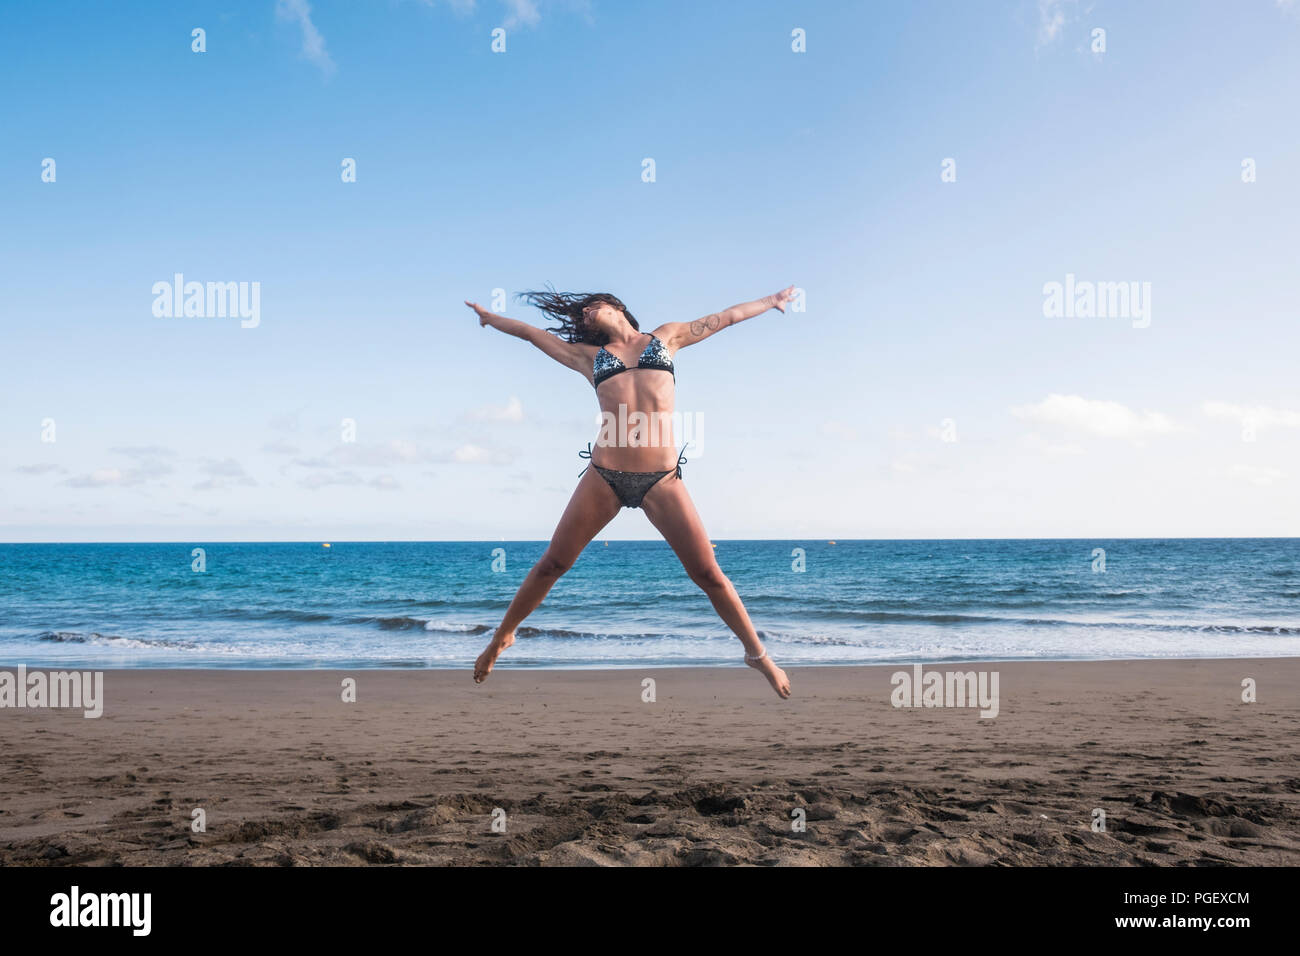 beautiful body fitness lifestyle young woman jump full of happiness at the beach near the shore and the waves of the blue ocean. joyful and summer fun - Stock Image